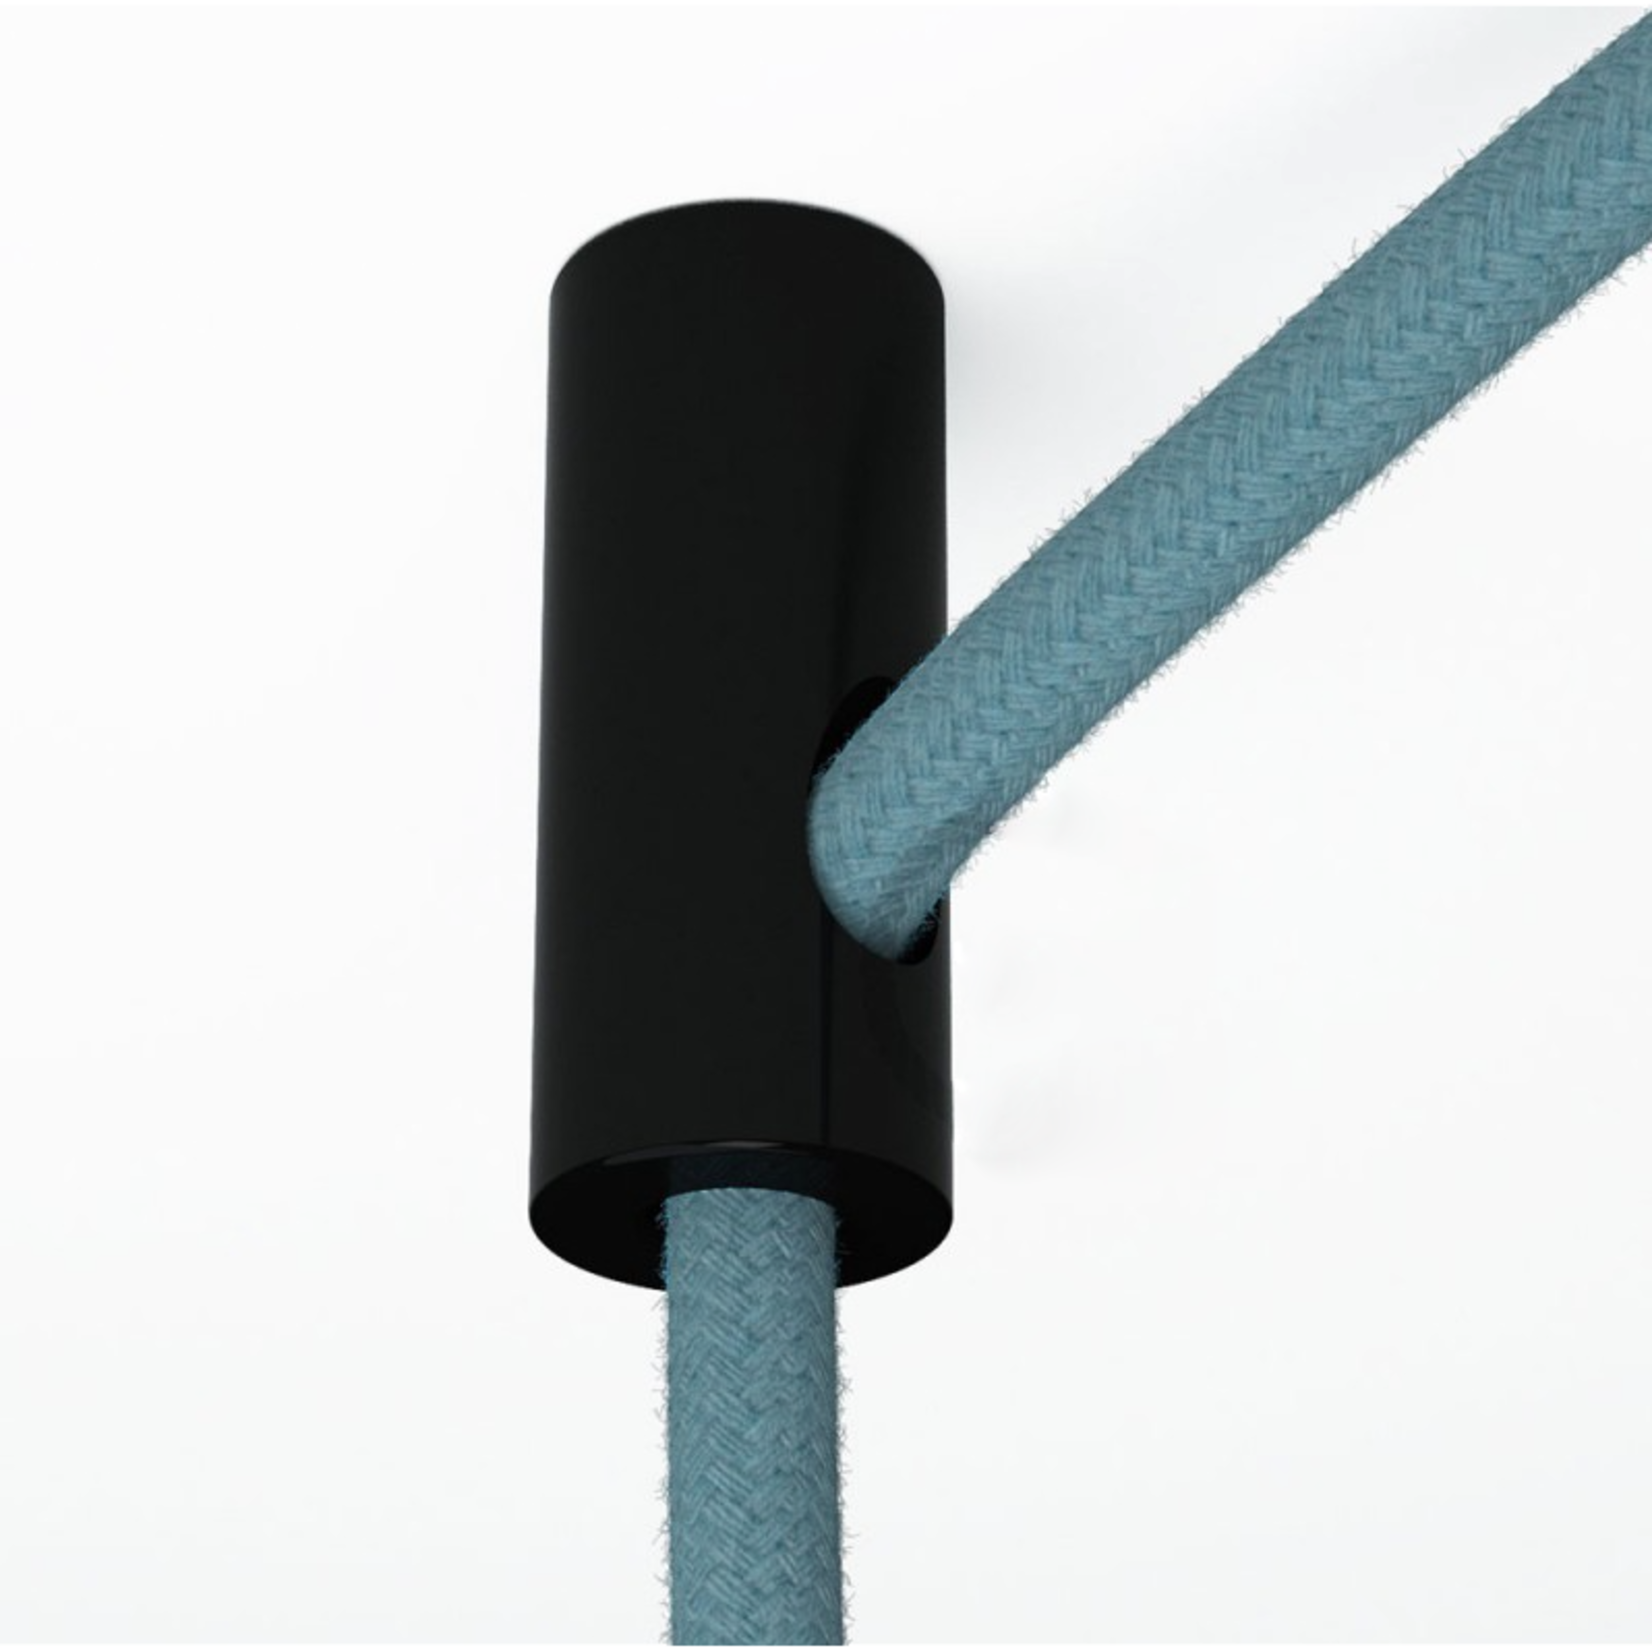 CCIT Cable Drop & Grip Black Plastic ceiling hook and stop fabric cable grip for cable